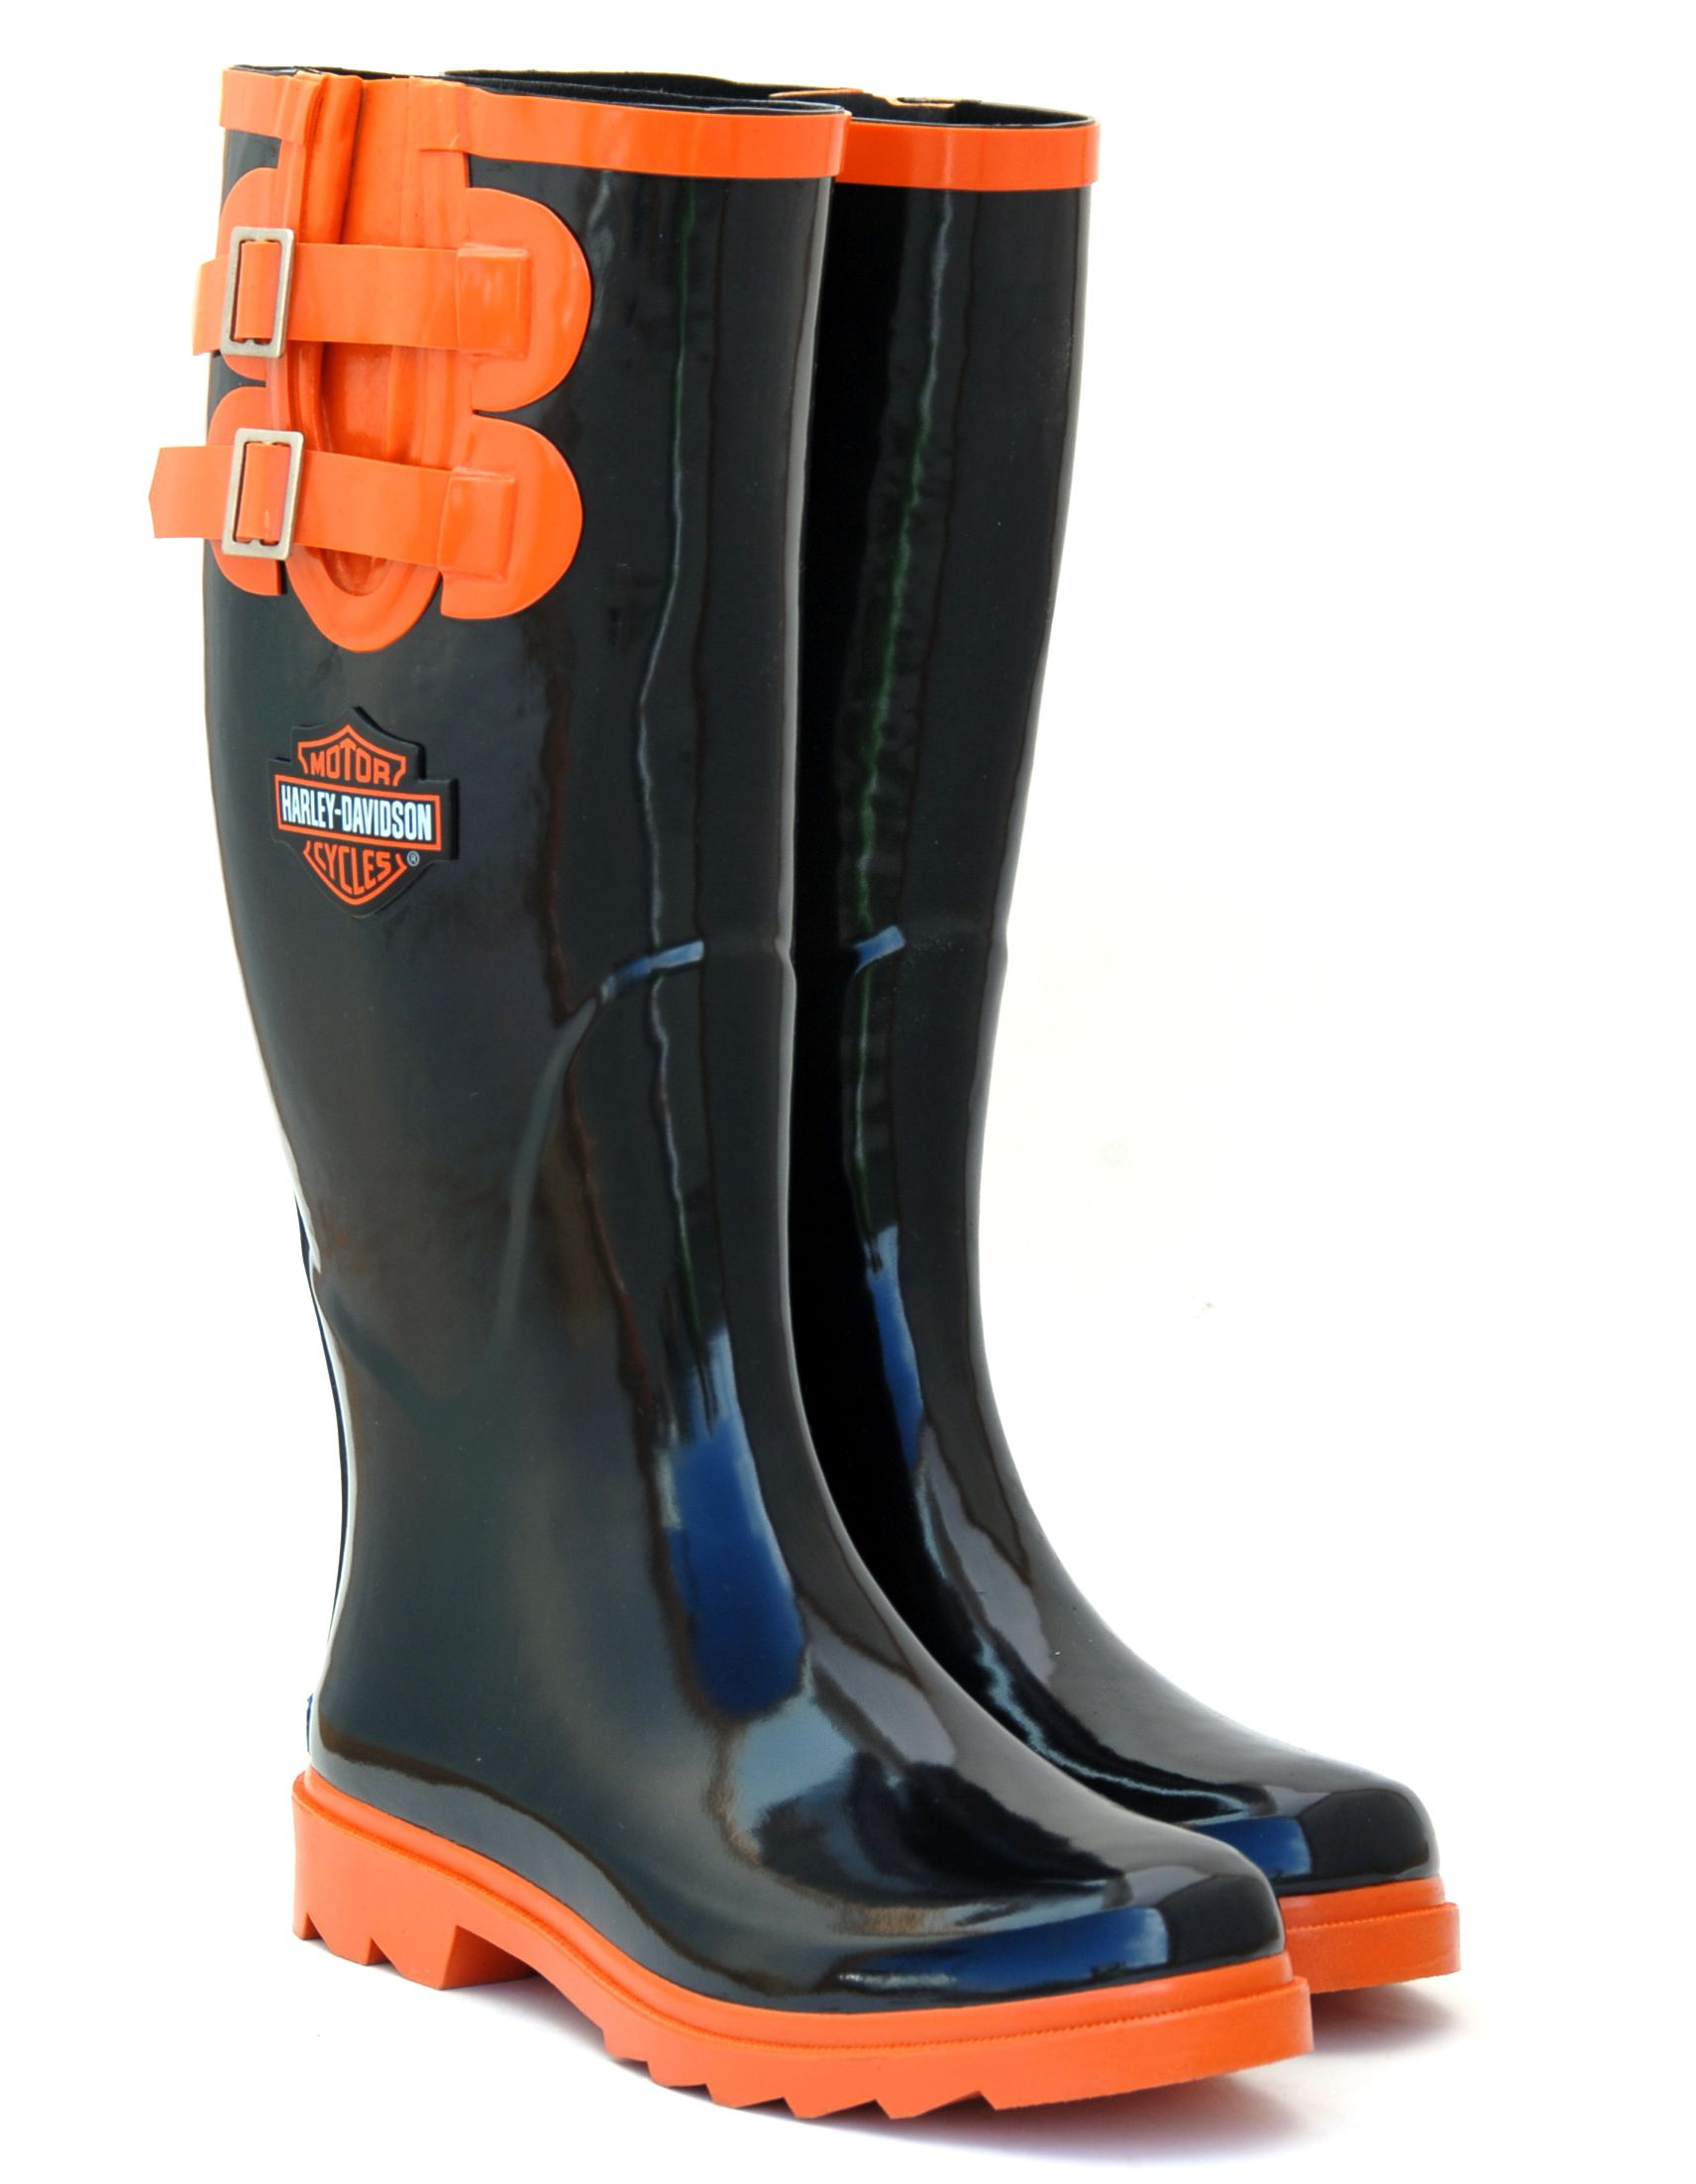 b970dacdf5a Neet Feet custom Ladies Rain Boot design for Harley Davidson #shoes ...